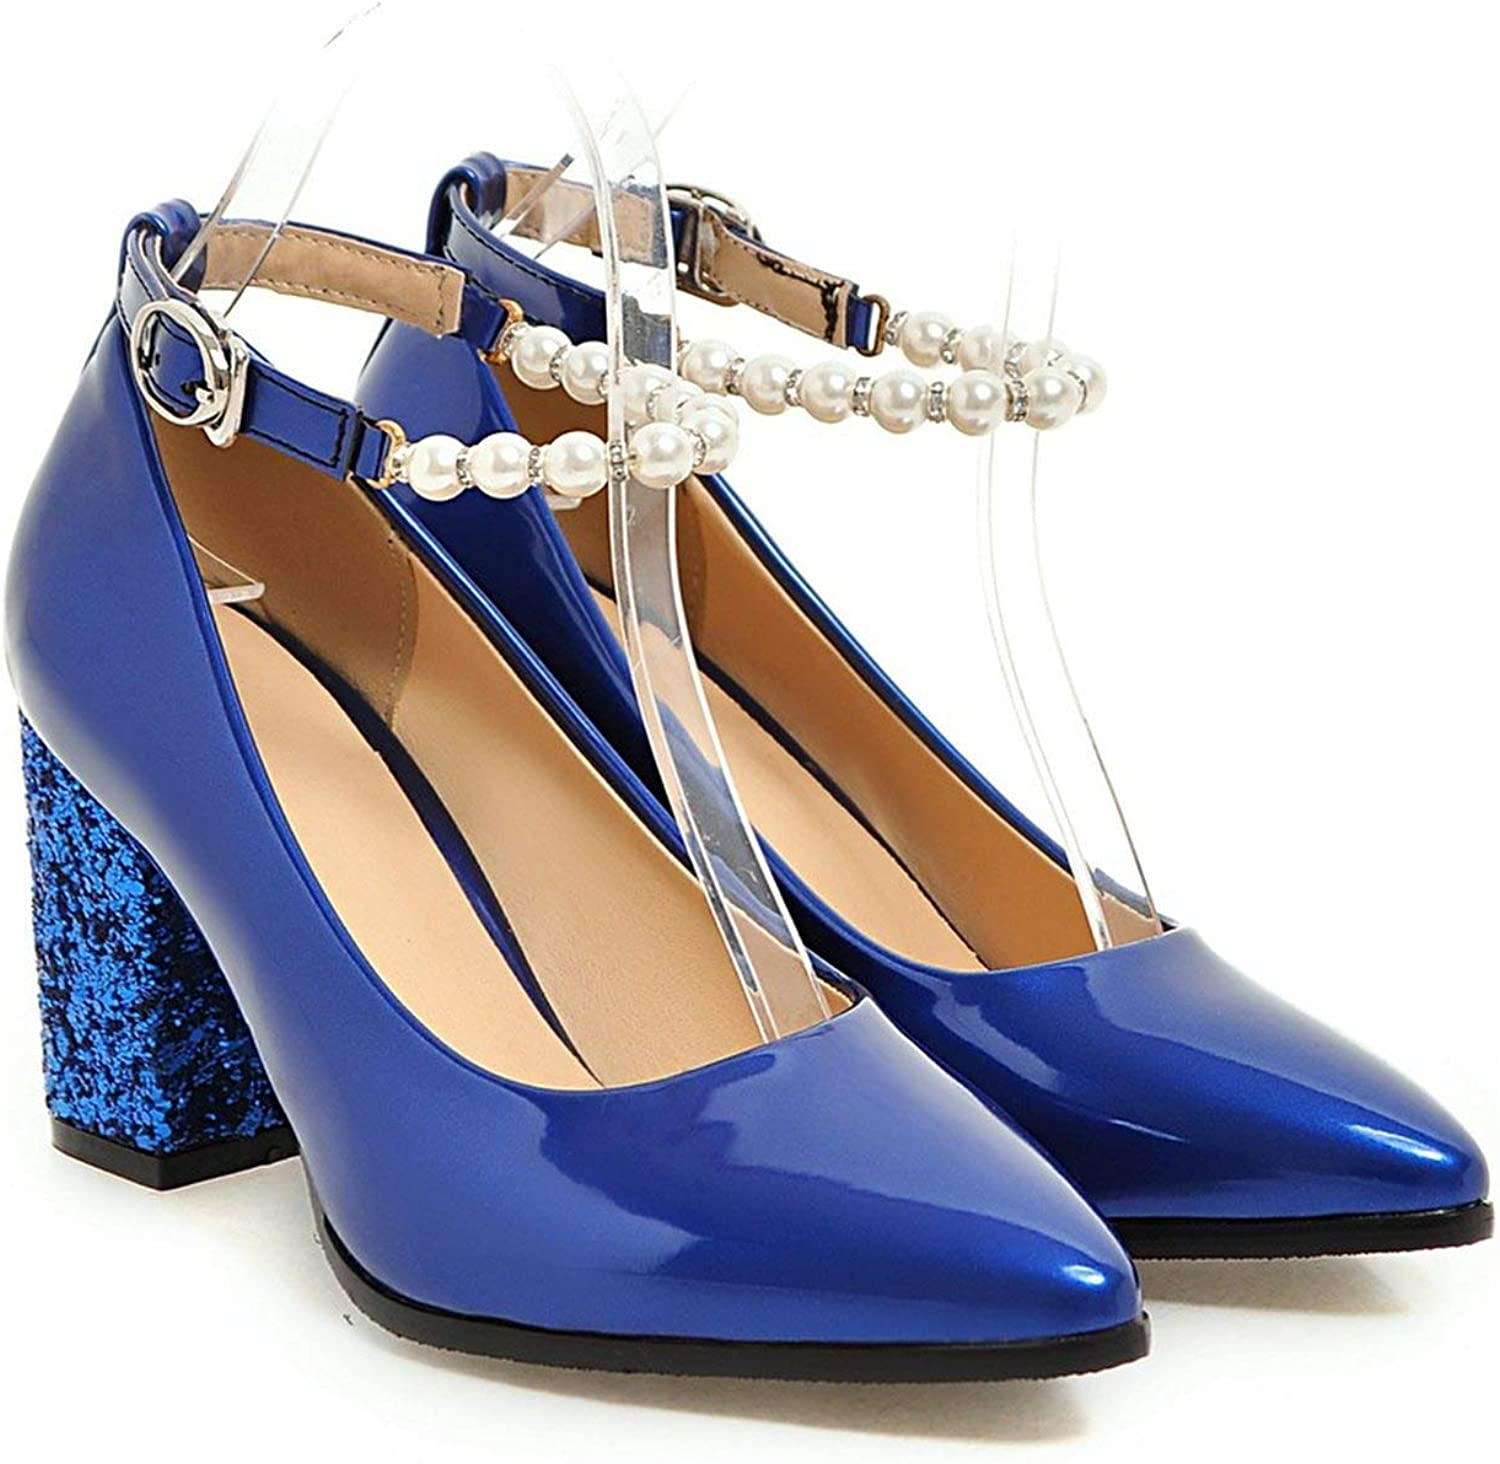 a958e0b55d1b8 Ladies FINDYOU Pumps Heels shoes Party Wedding for High Square Strap ...